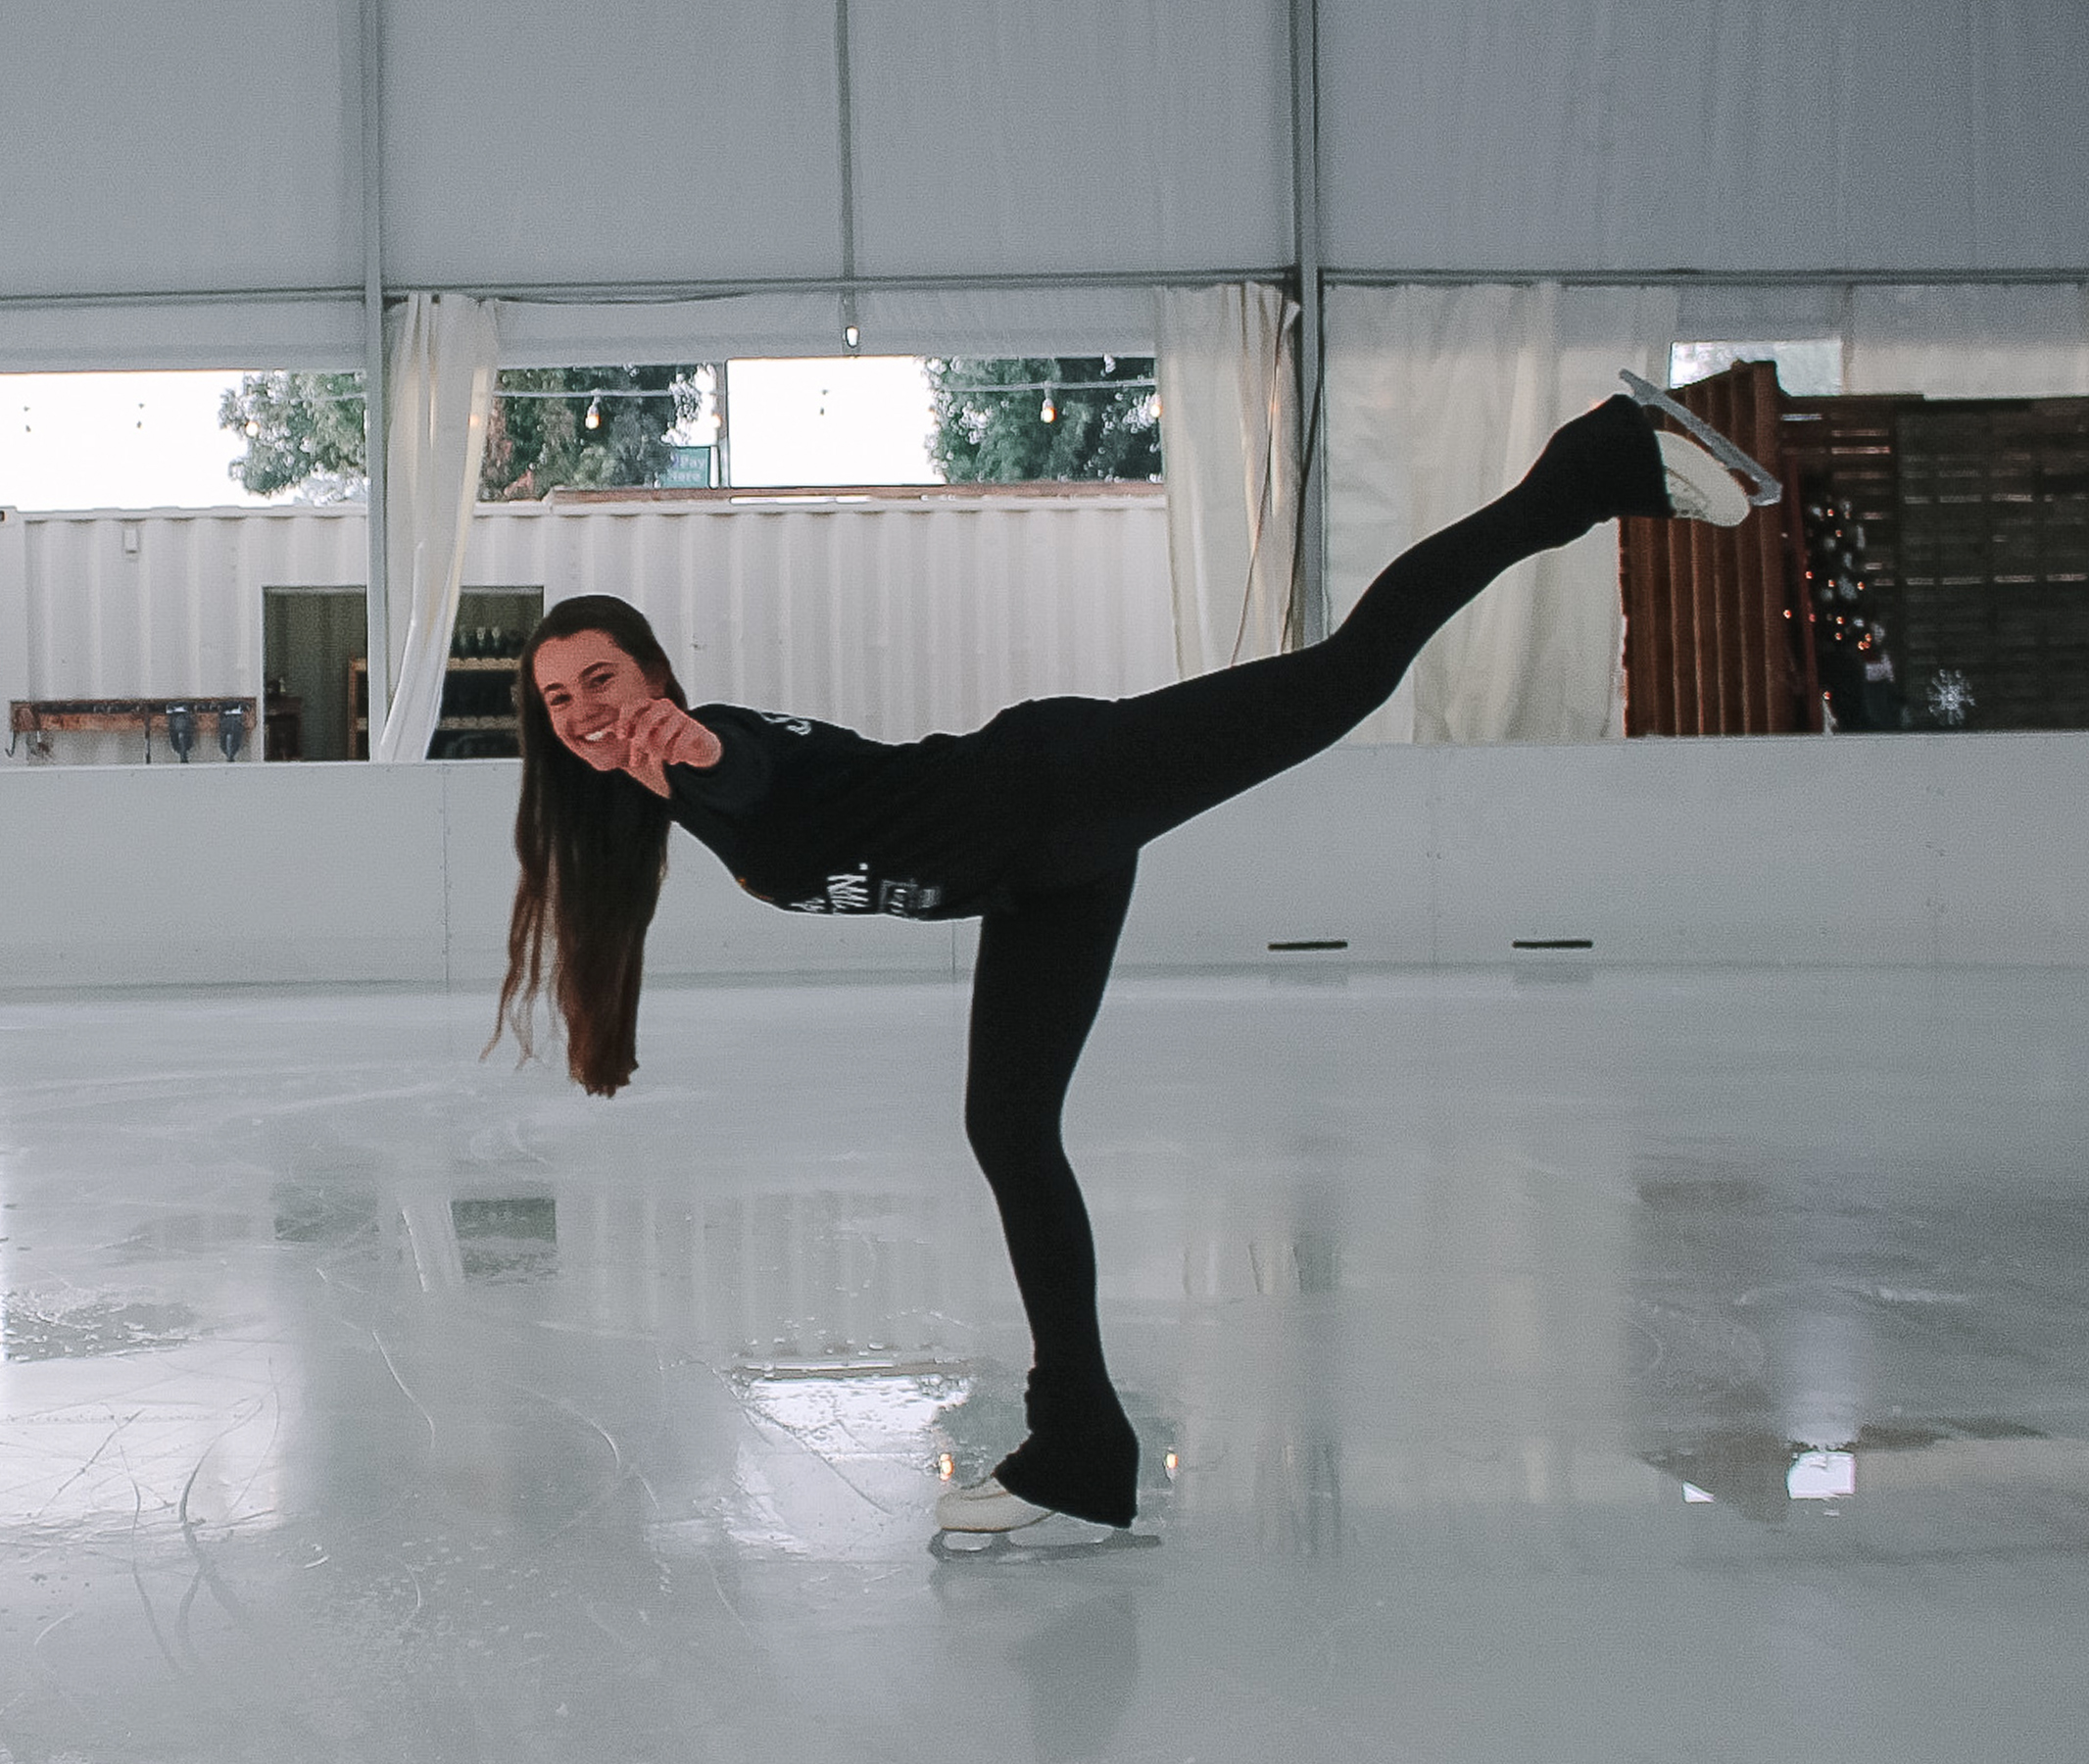 Addy - I've been ice-skating since I was 10 but never really got into it until my parents opened up Modesto On Ice four years ago. They bought me my first pair of figure skates for Christmas the first year we opened. It's a hobby I really enjoy doing with my younger sisters. I am a person that enjoys being active and being outdoors. My favorite hobbies include ice skating, CrossFit, boating, hiking, and four wheeling.